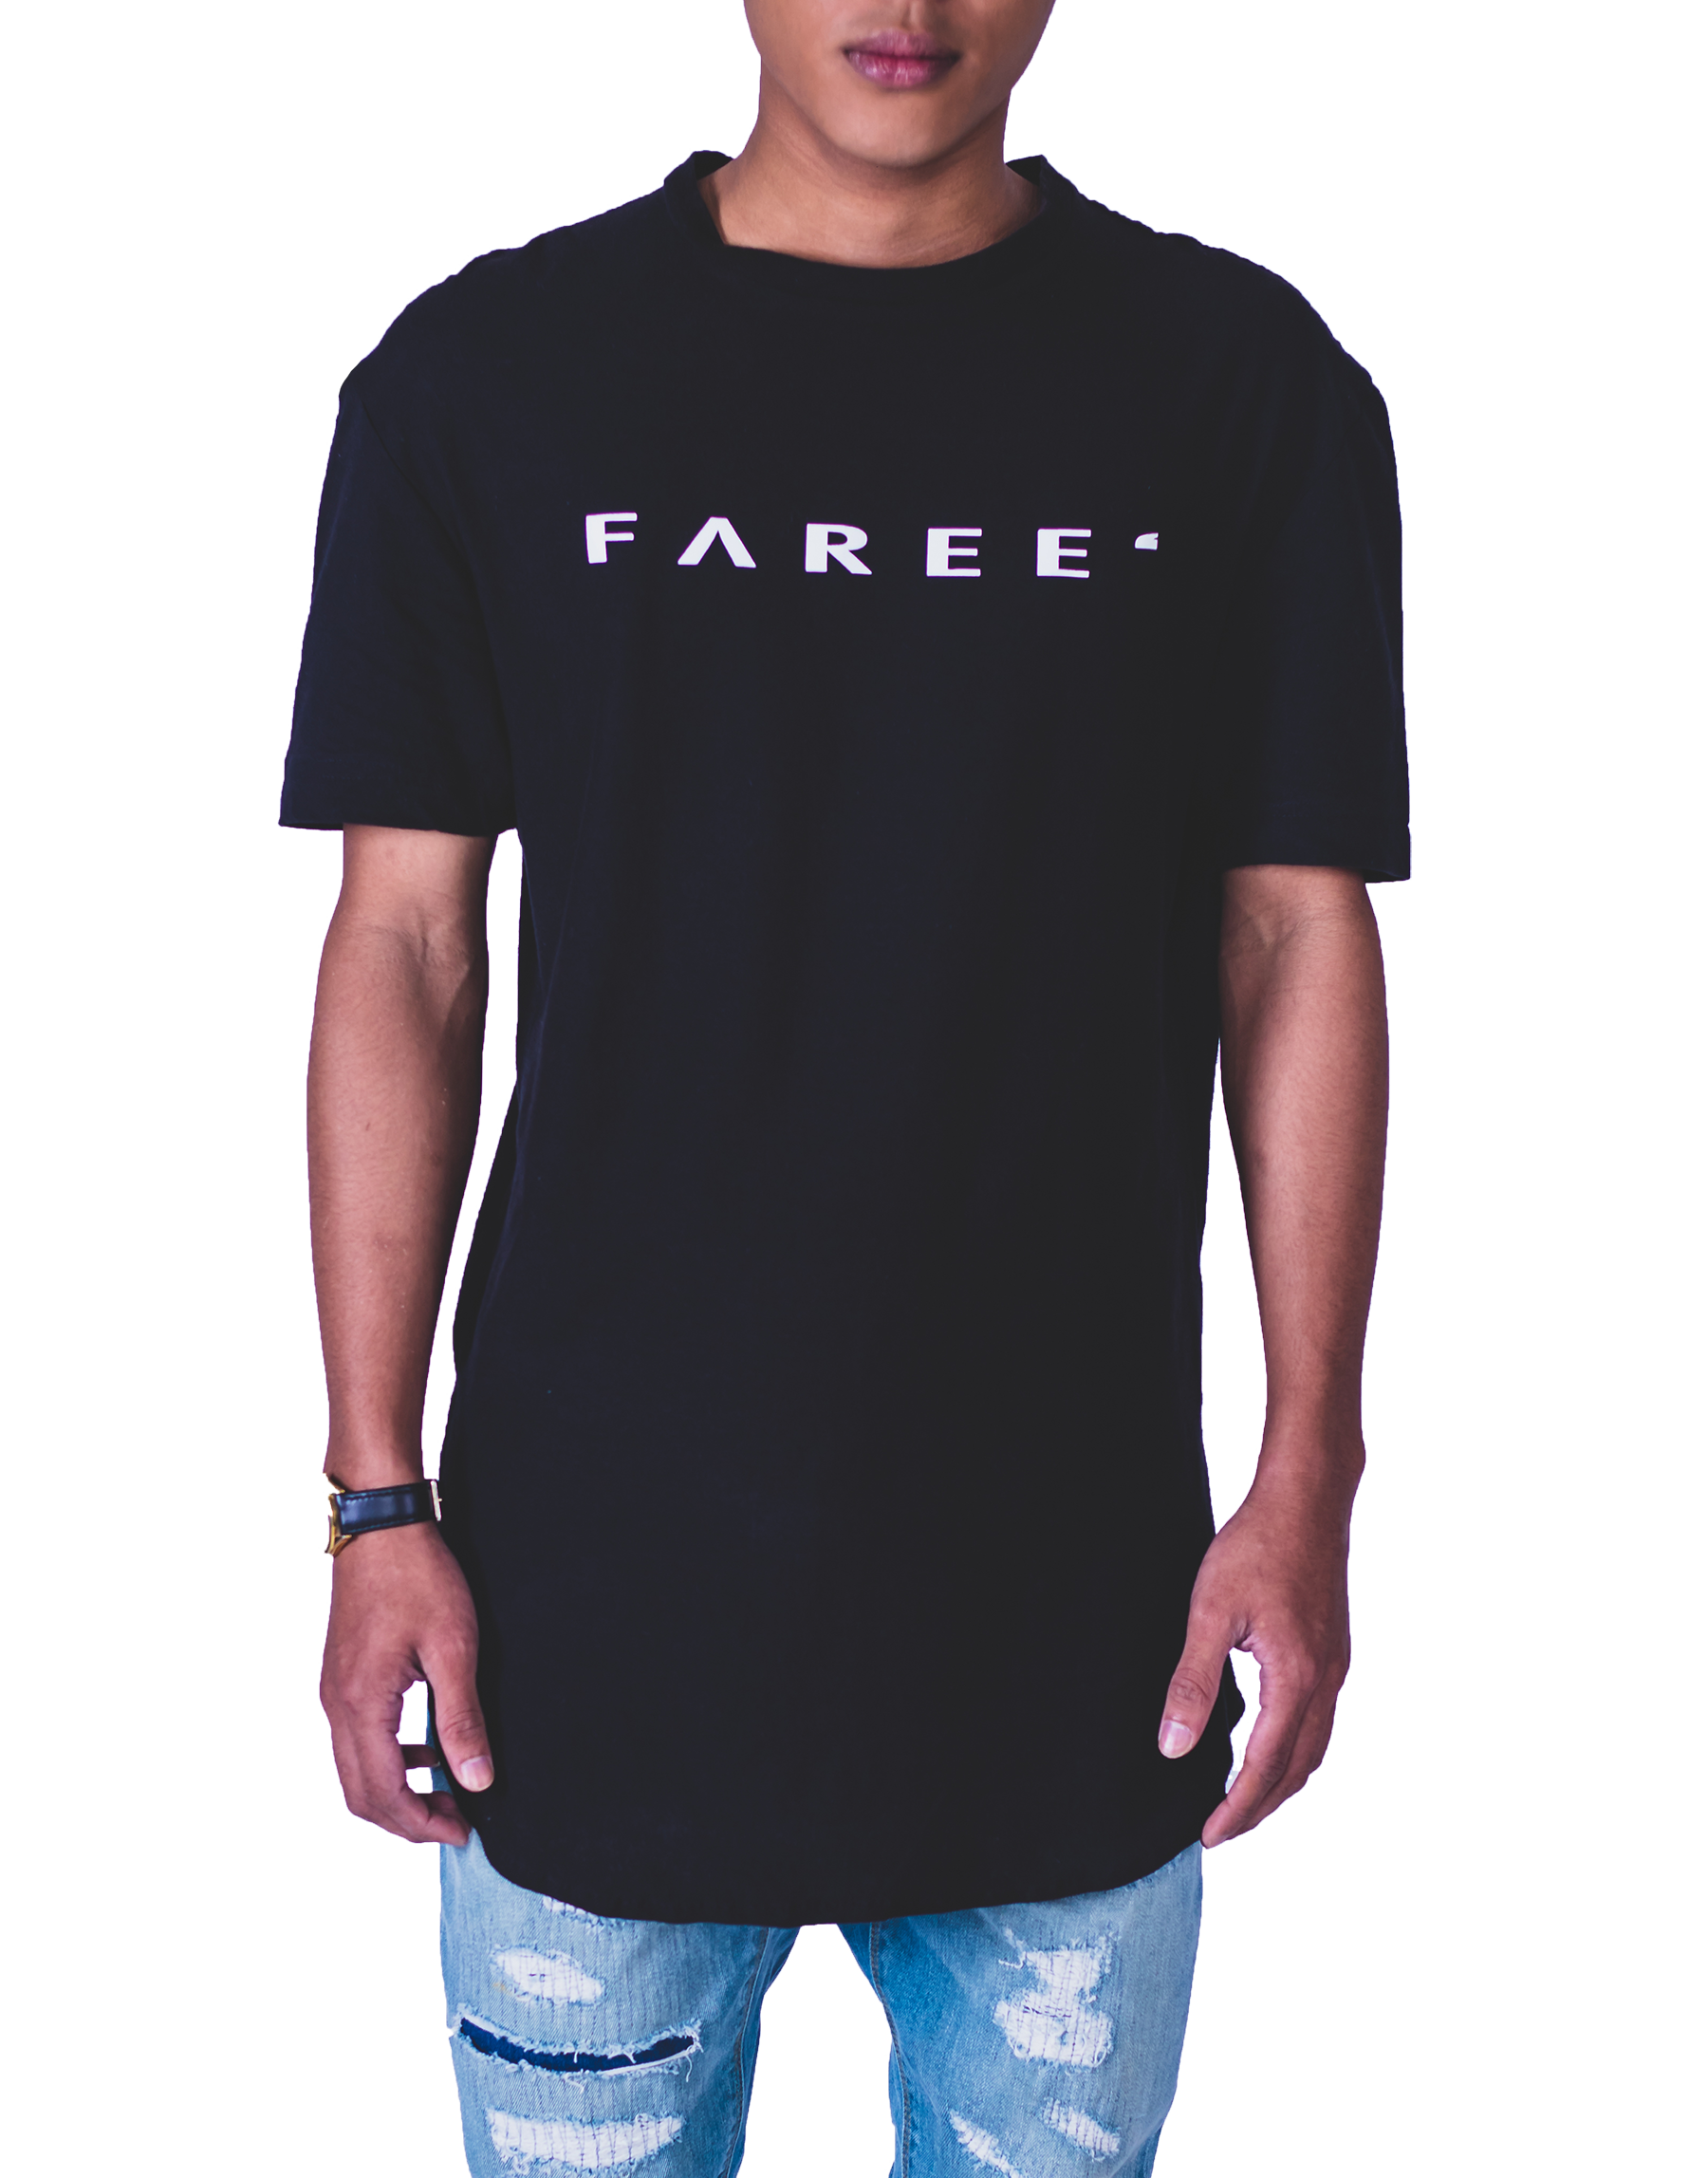 Faree' Homme Longline Printed Logo T-Shirt in Black